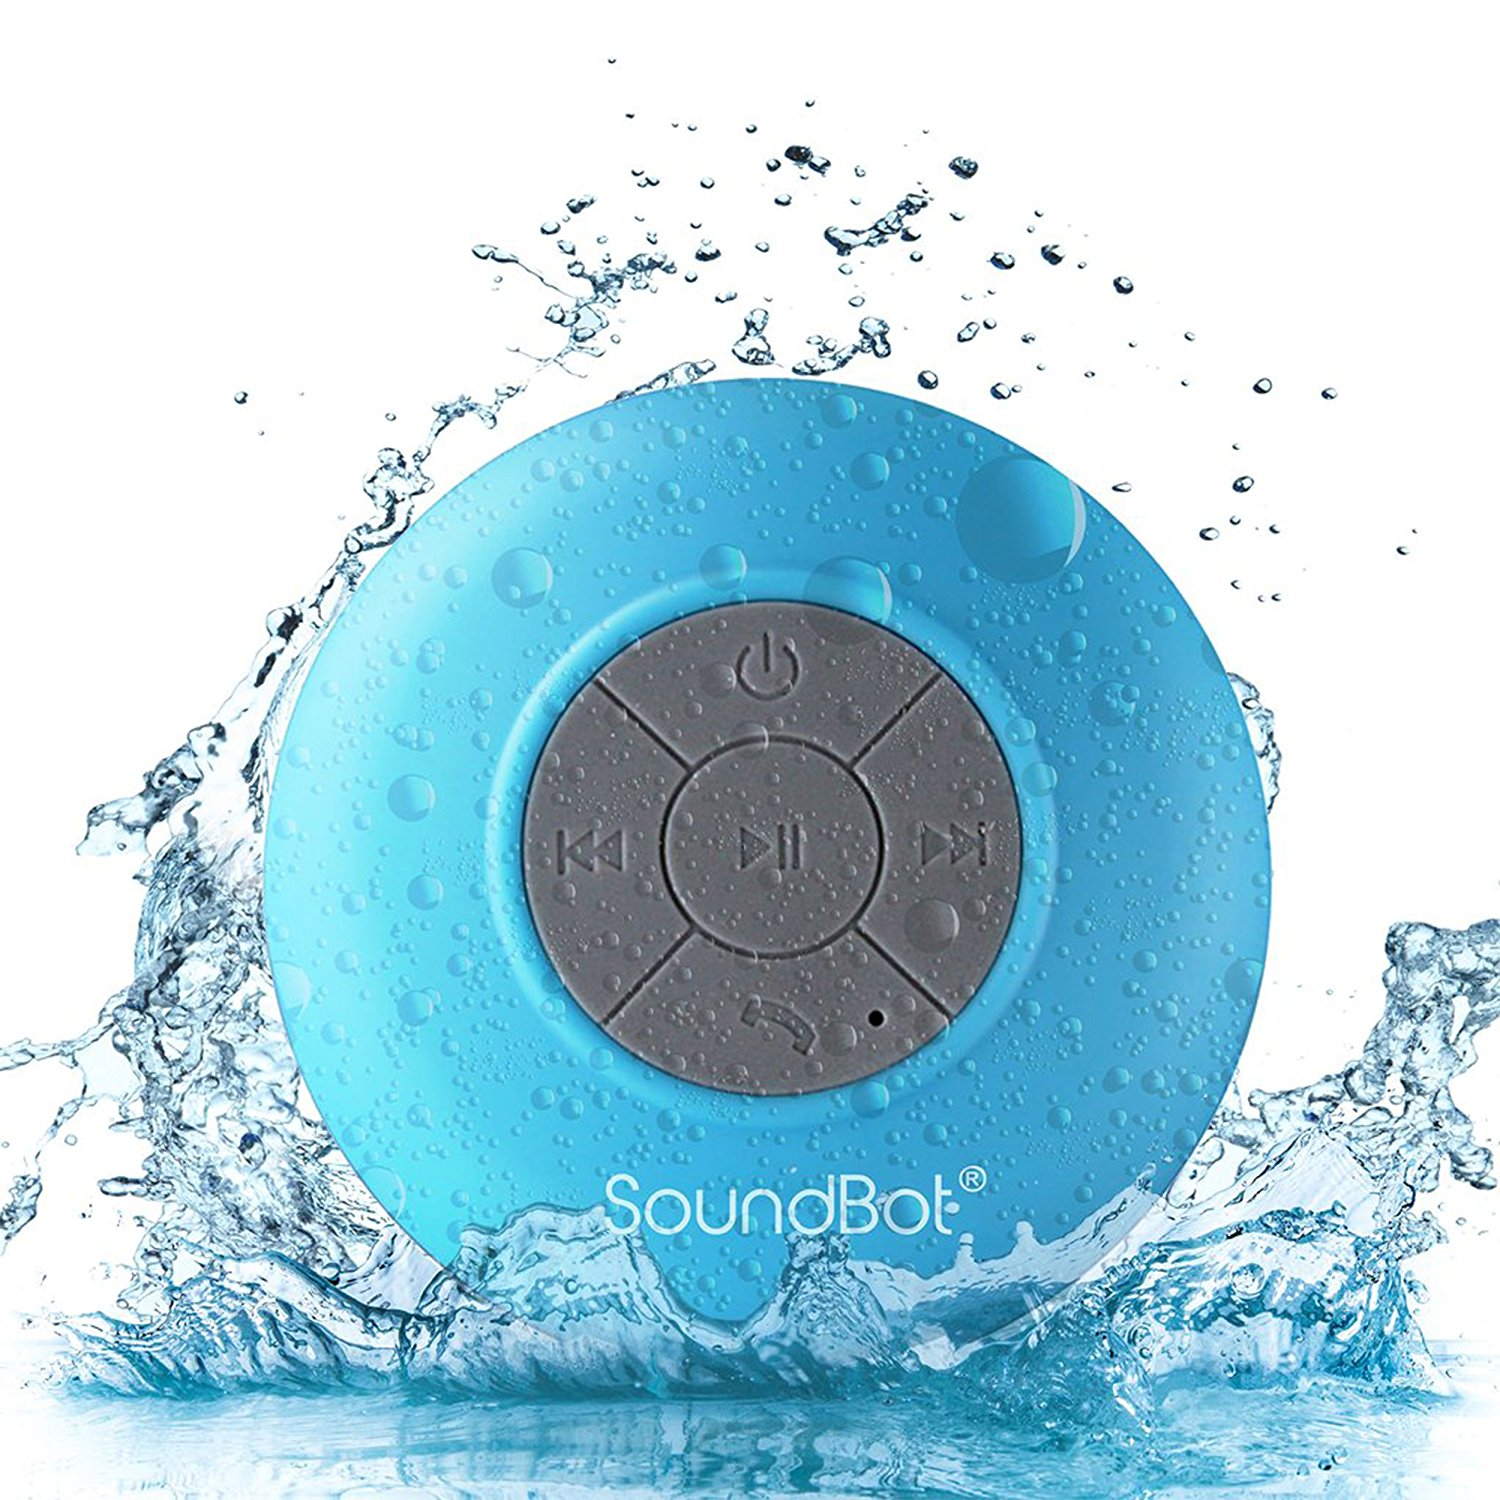 SoundBot Water Resistant Speaker